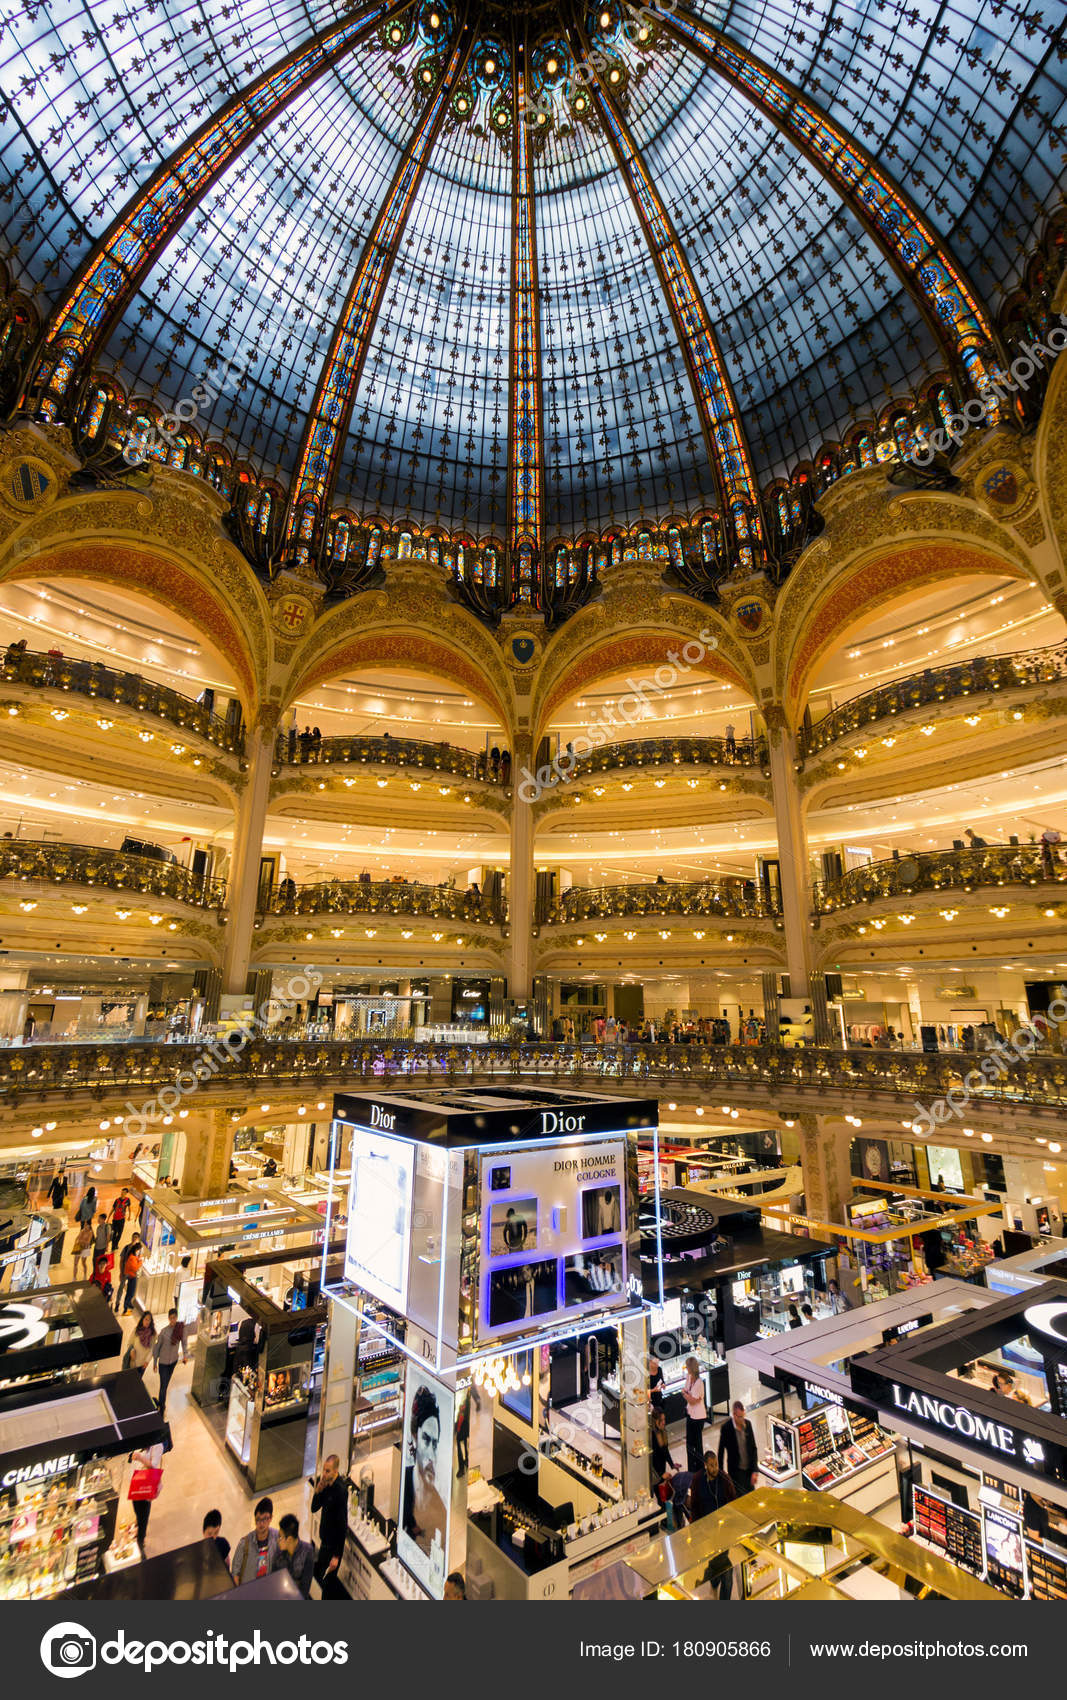 paris france jun 2015 interior view galeries lafayette shopping mall